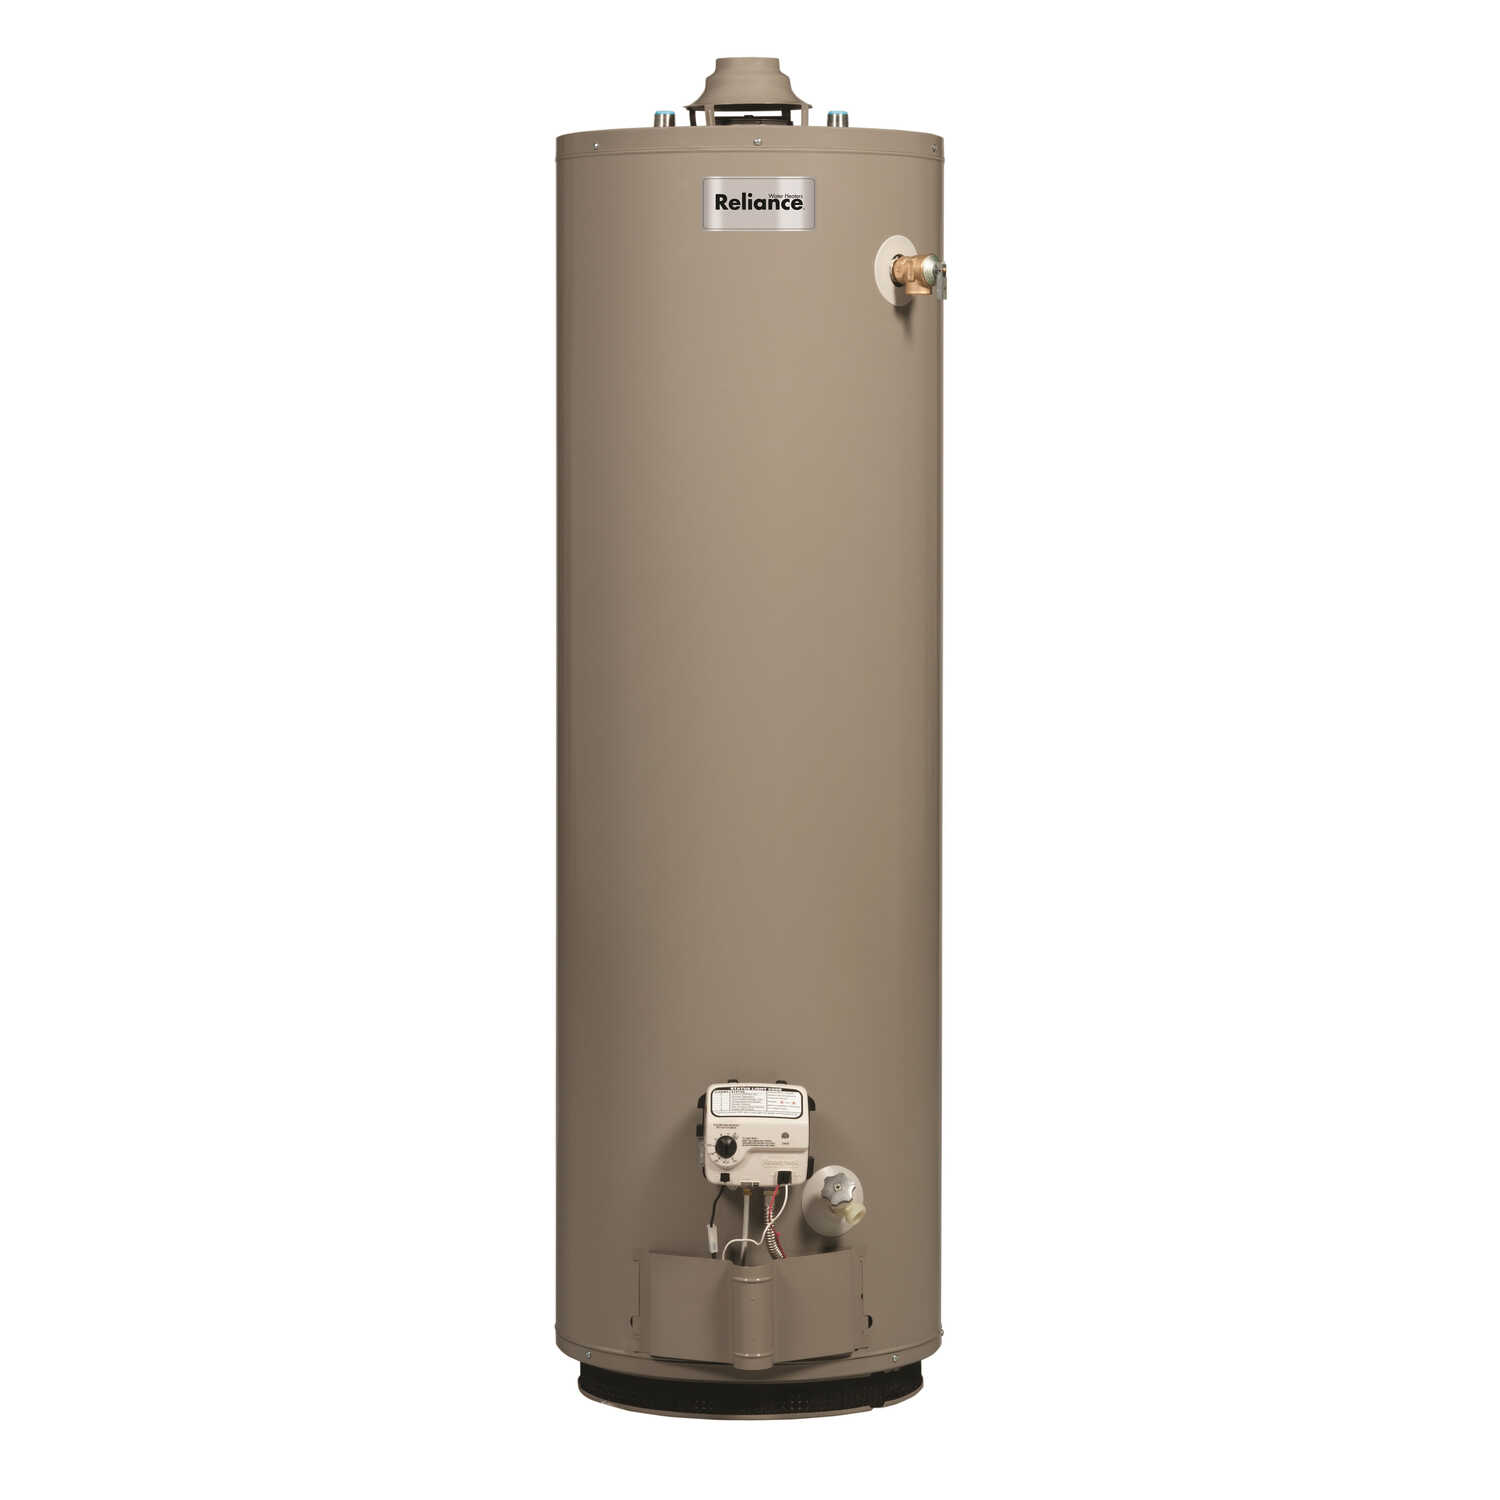 Reliance  Natural Gas  Water Heater  61-3/4 in. H x 18 in. W x 18 in. L 30 gal.